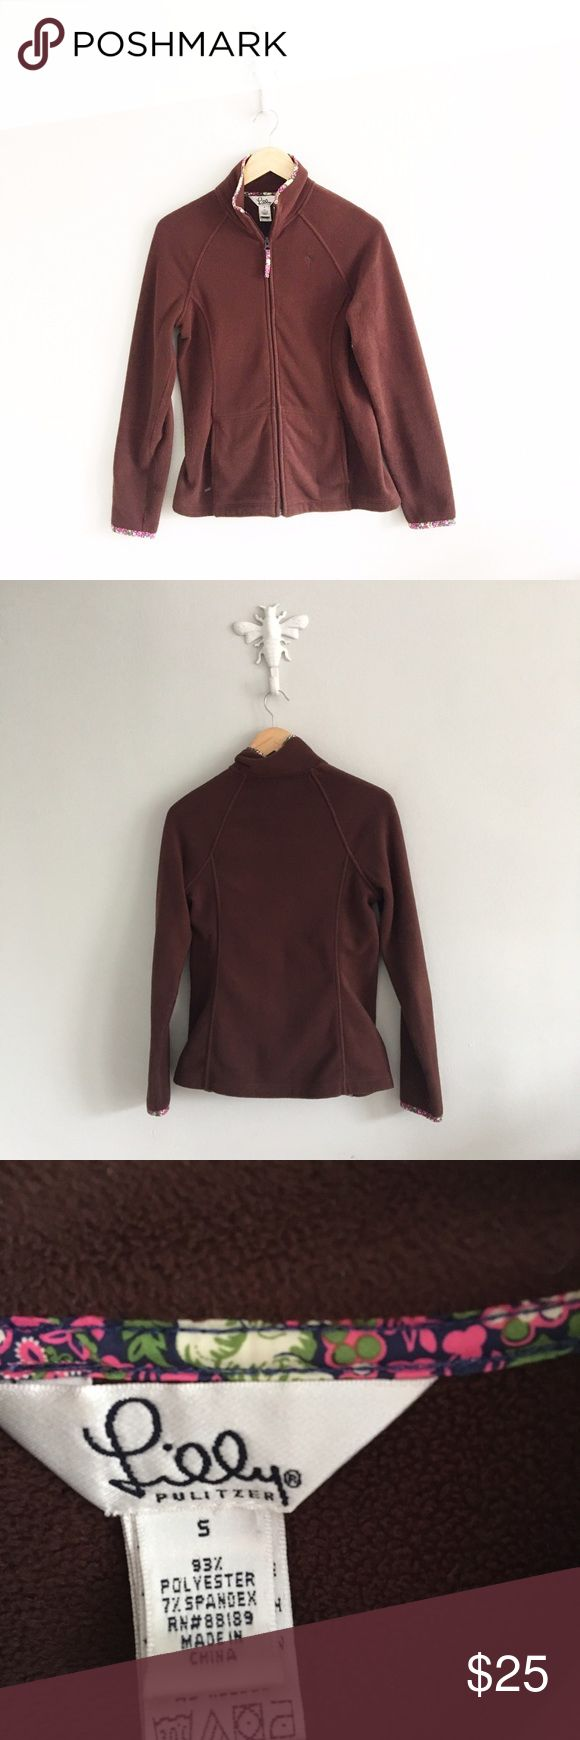 "Lilly Pulitzer Chocolate Brown Zip Up Fleece 93% polyester, 7% spandex. Chest: 34"". Length: 25"". Gently pre-loved with no rips or stains, please see all pictures for an accurate description of condition. Lilly Pulitzer Tops Sweatshirts & Hoodies"